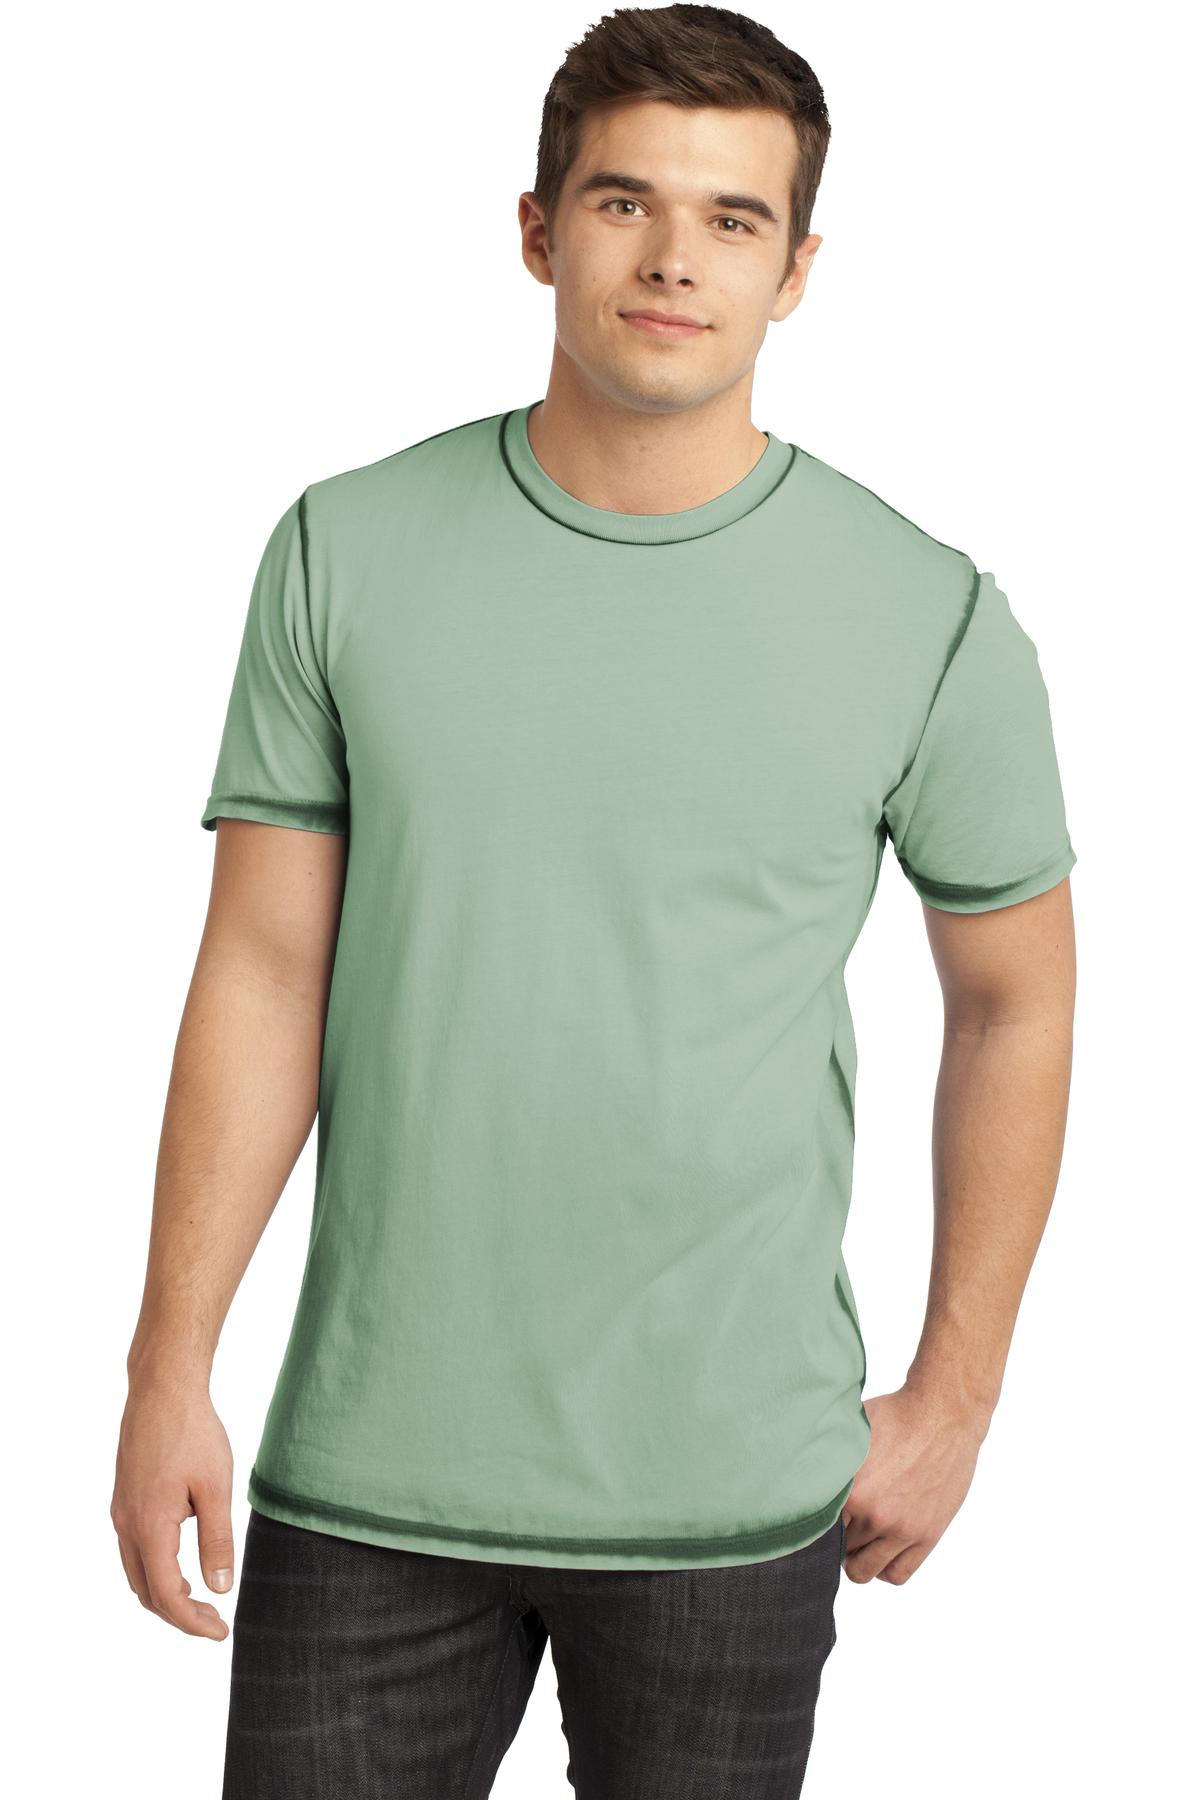 CLOSEOUT District - Young Mens Faded Crew Tee. DT1200